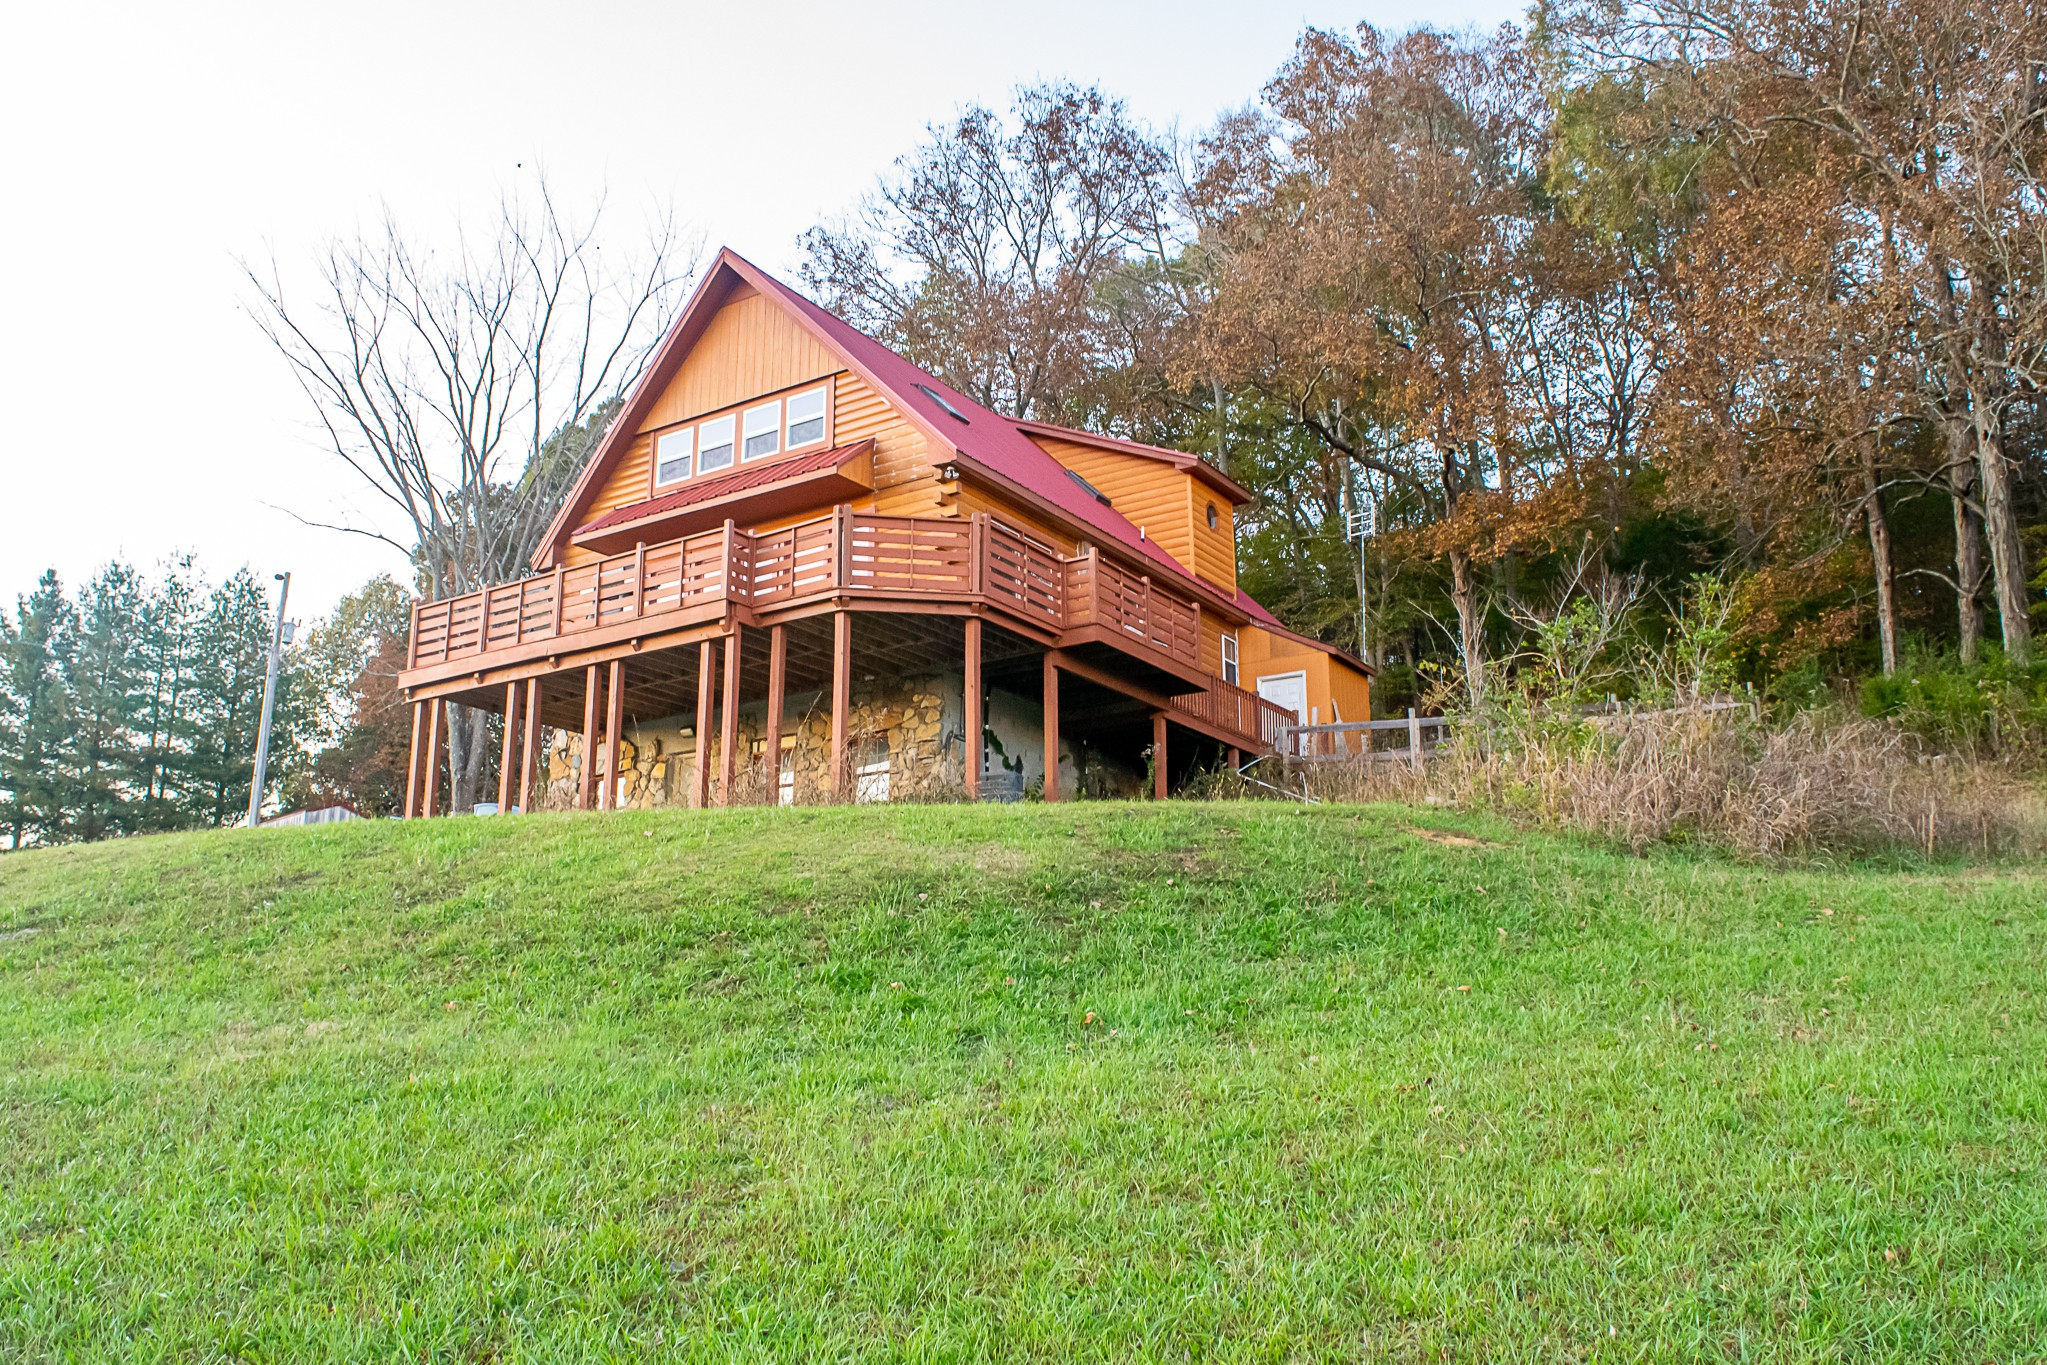 537 Watt Nolen Rd, Cottontown, TN 37048 - Cottontown, TN real estate listing